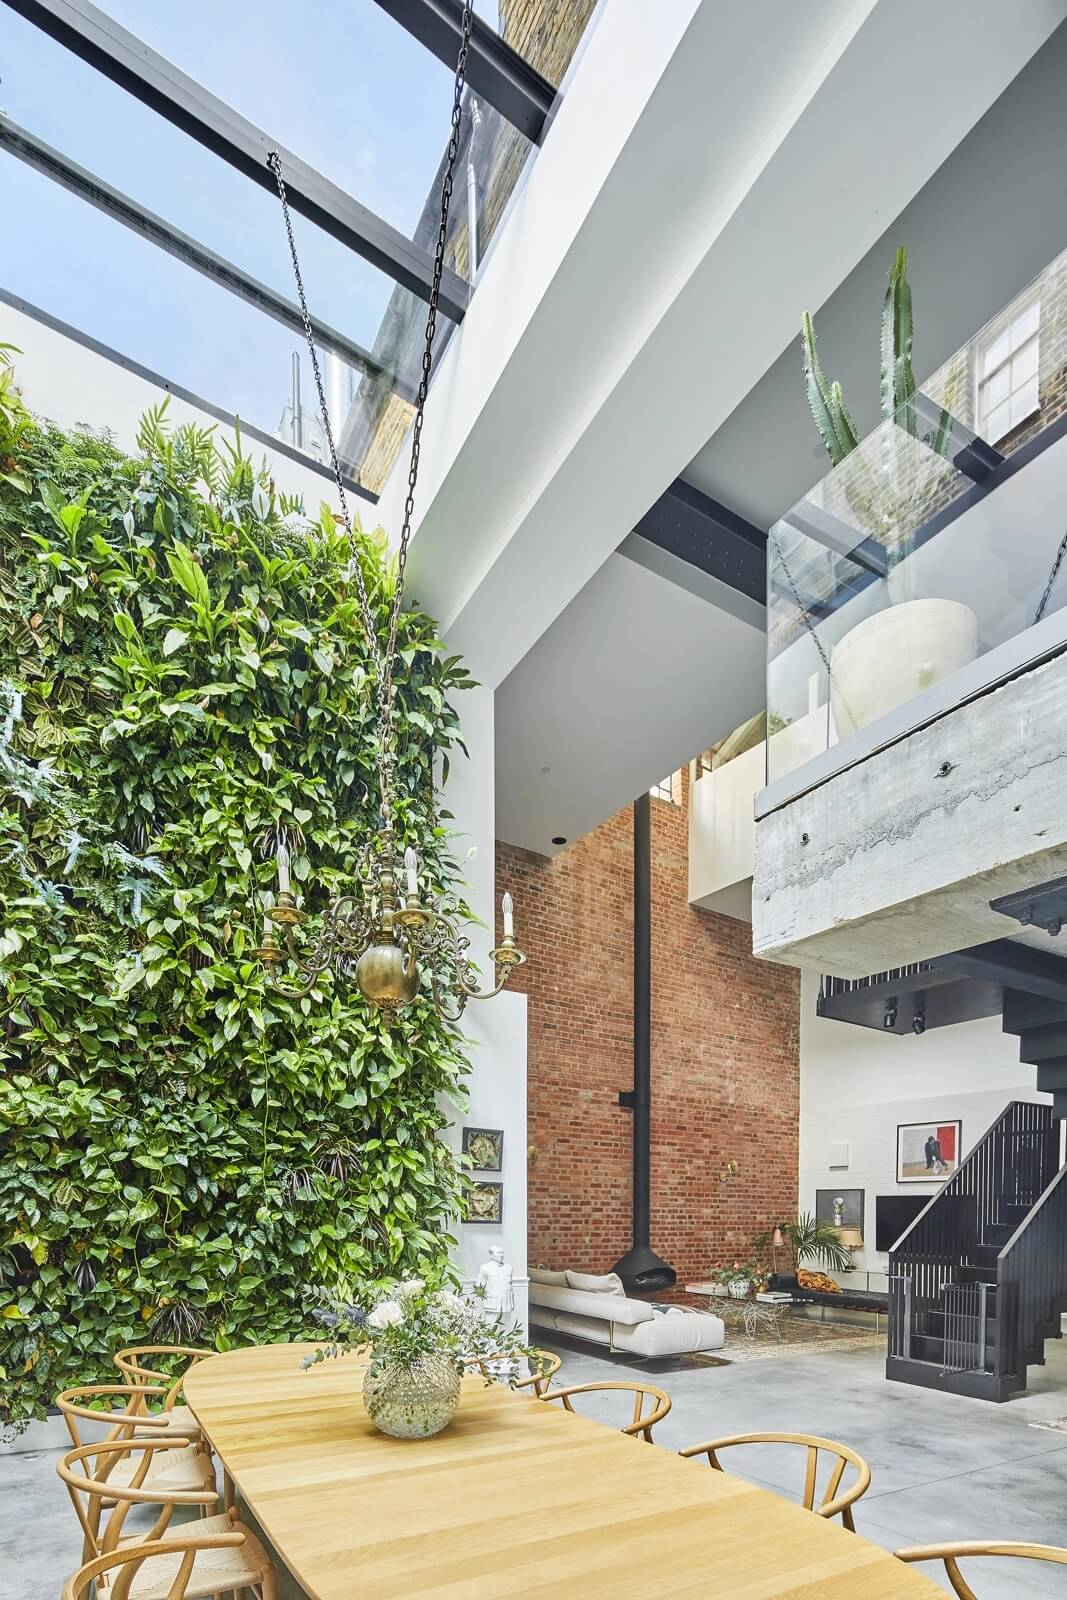 Clerkenwell Cooperage: A London Brewery Conversion by Chris Dyson Architects